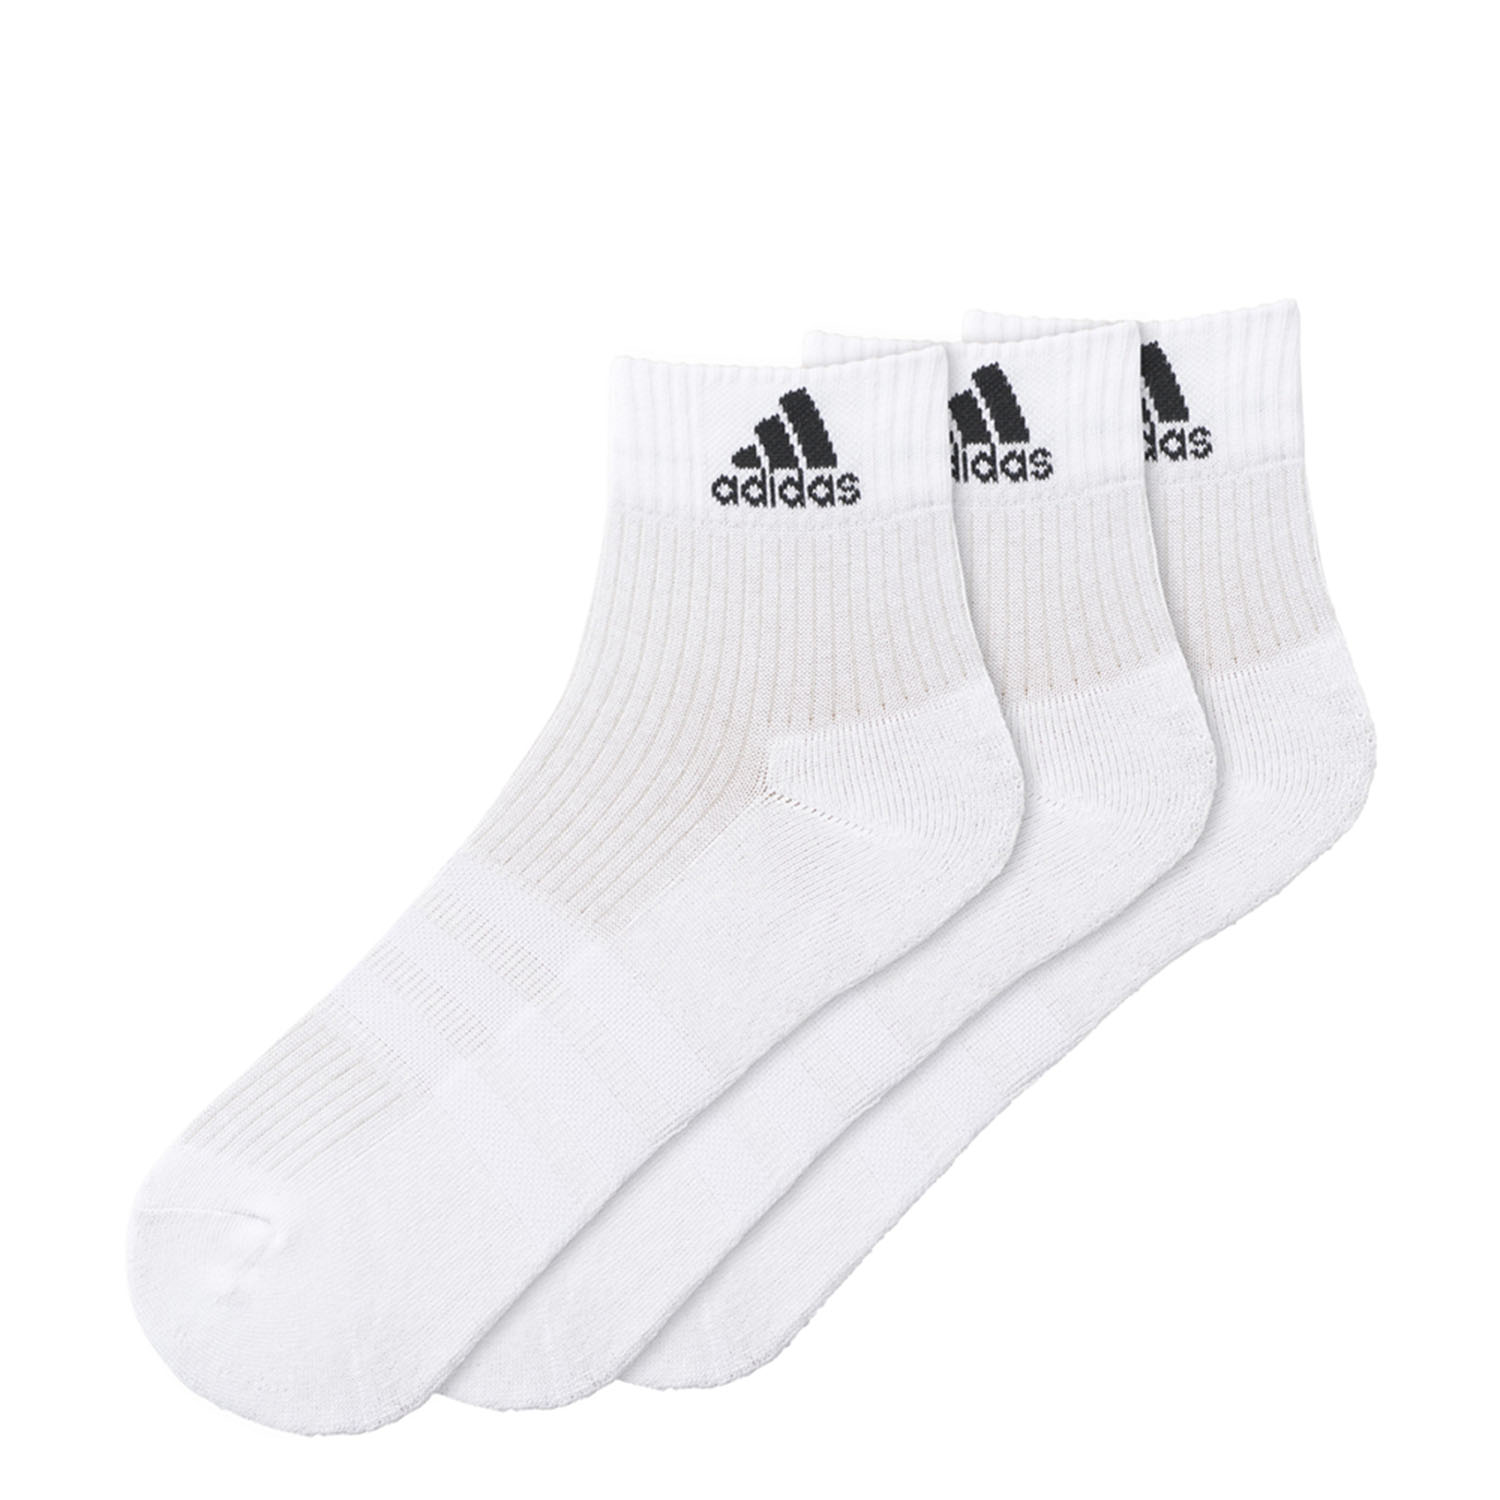 14cb48cda Details about Adidas 3-Stripes Performance Ankle Socks 3 Pairs White/Black  AA2285